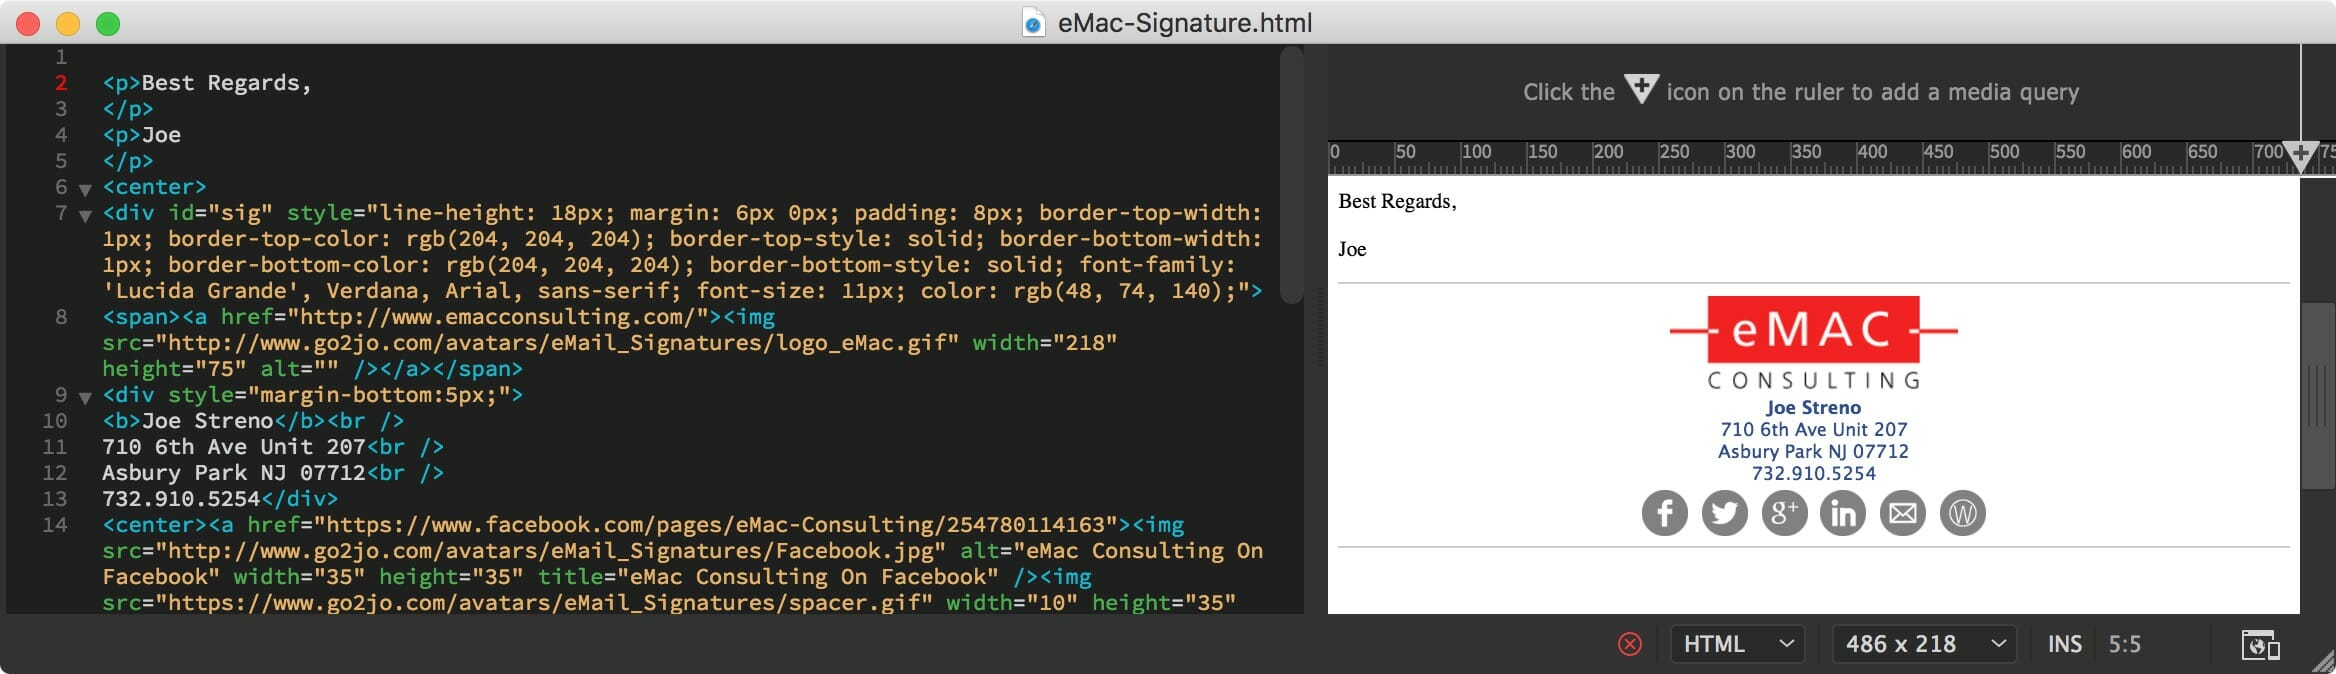 Creating Signatures In Apple Mail 5